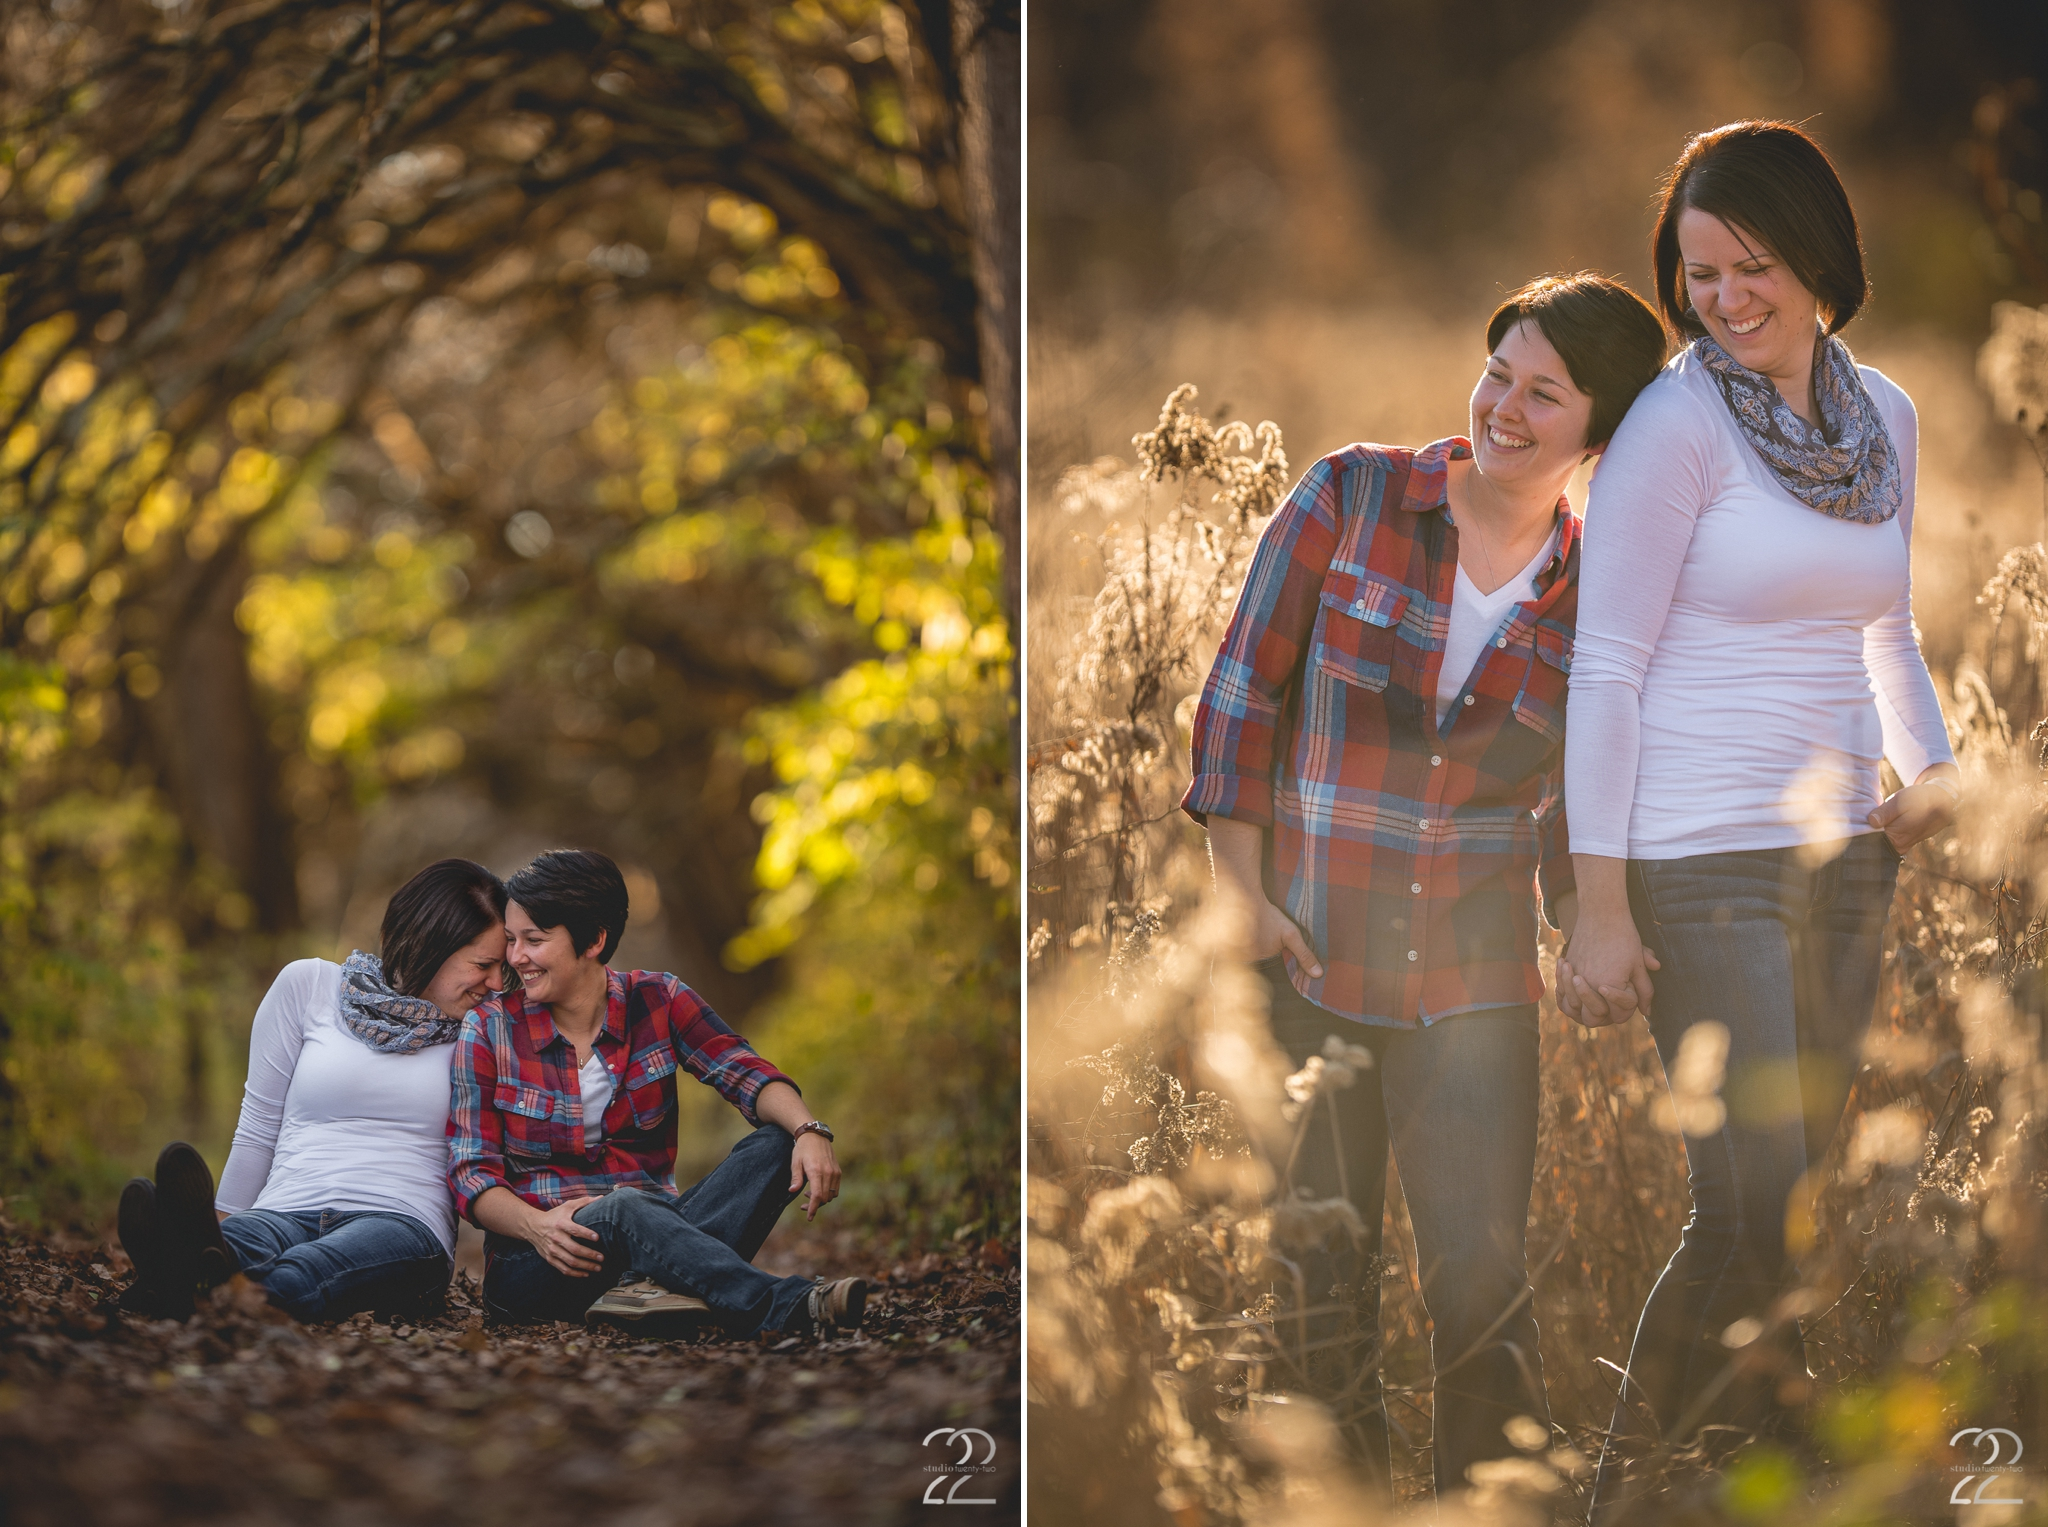 Autumn Engagement Session in a Metropark